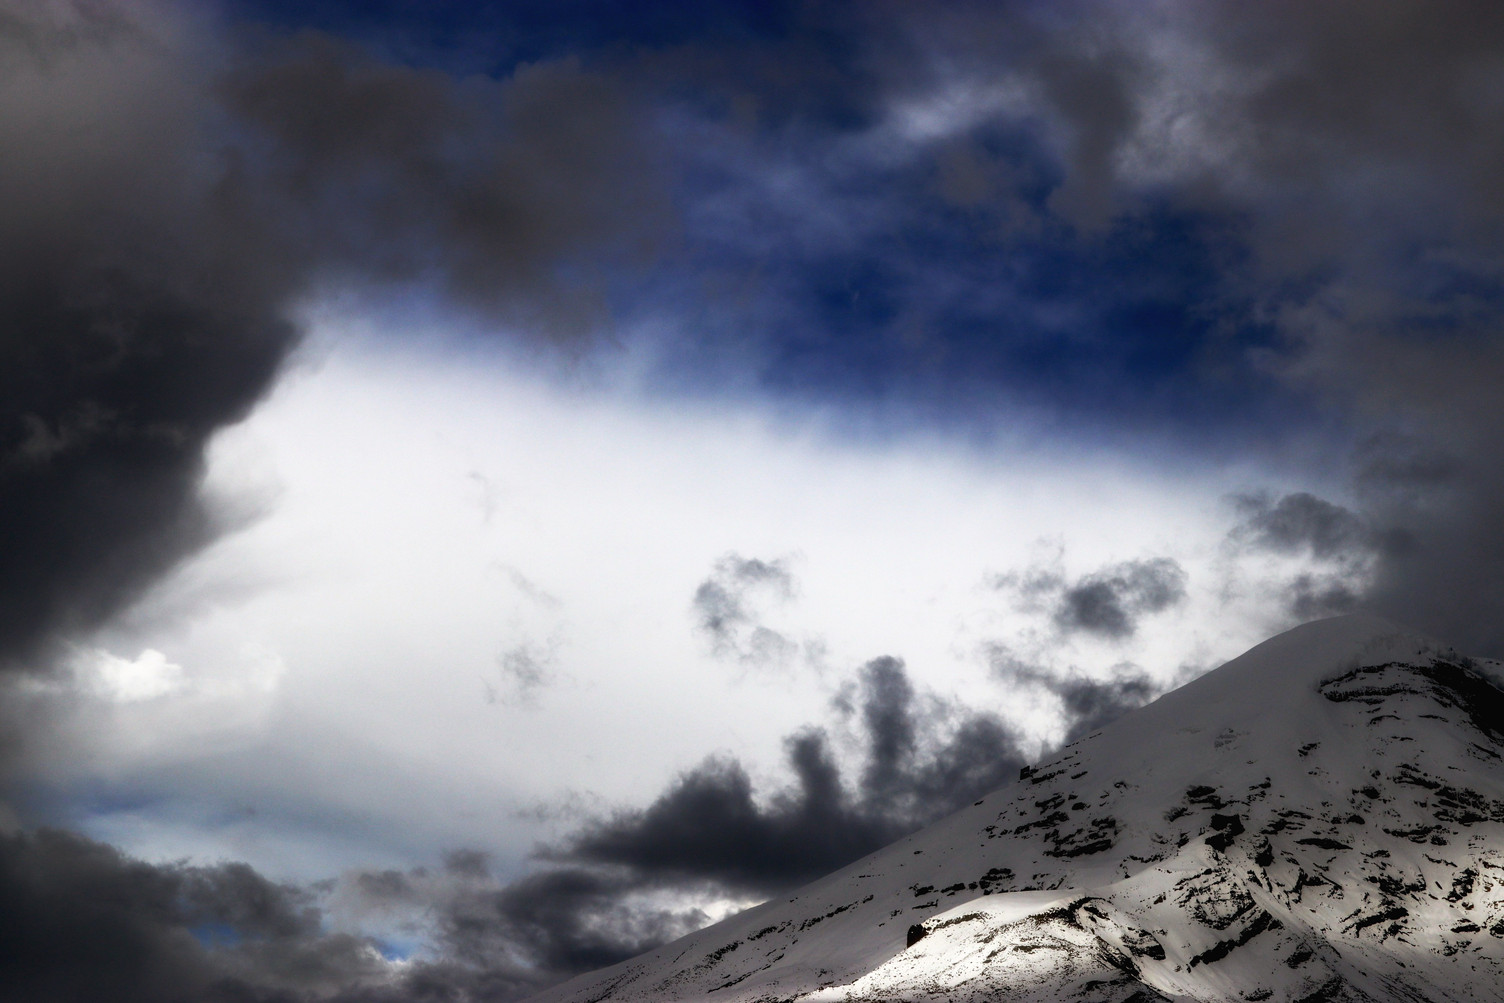 Above about 5000m (16,500') precipitation in the tropical Andes falls as snow.